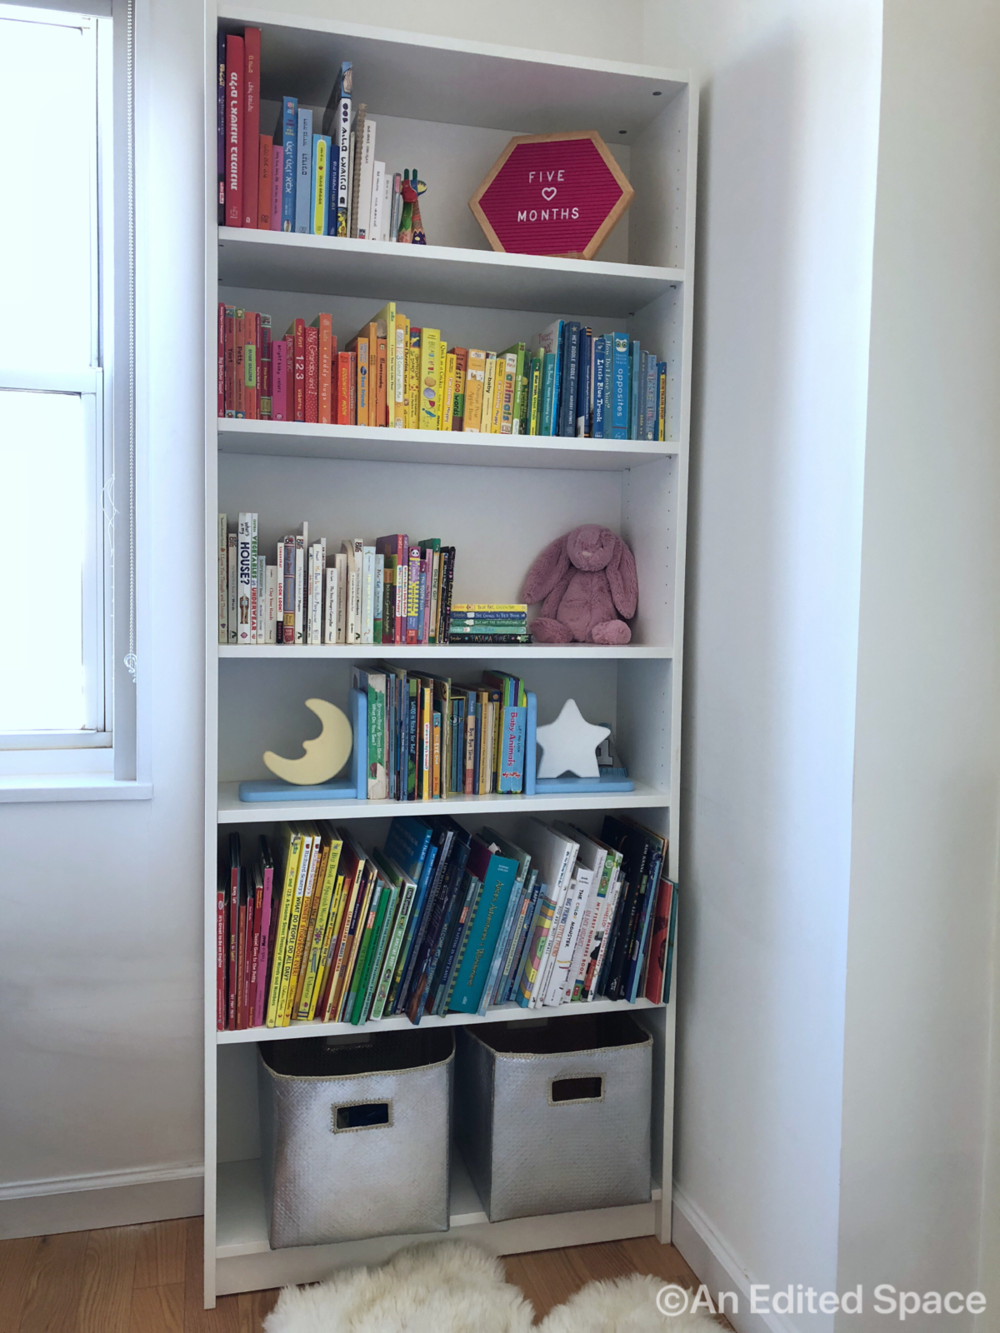 Click  here  for details on items pictured, and  here  for  Miriam's top baby and kid book recommendations .